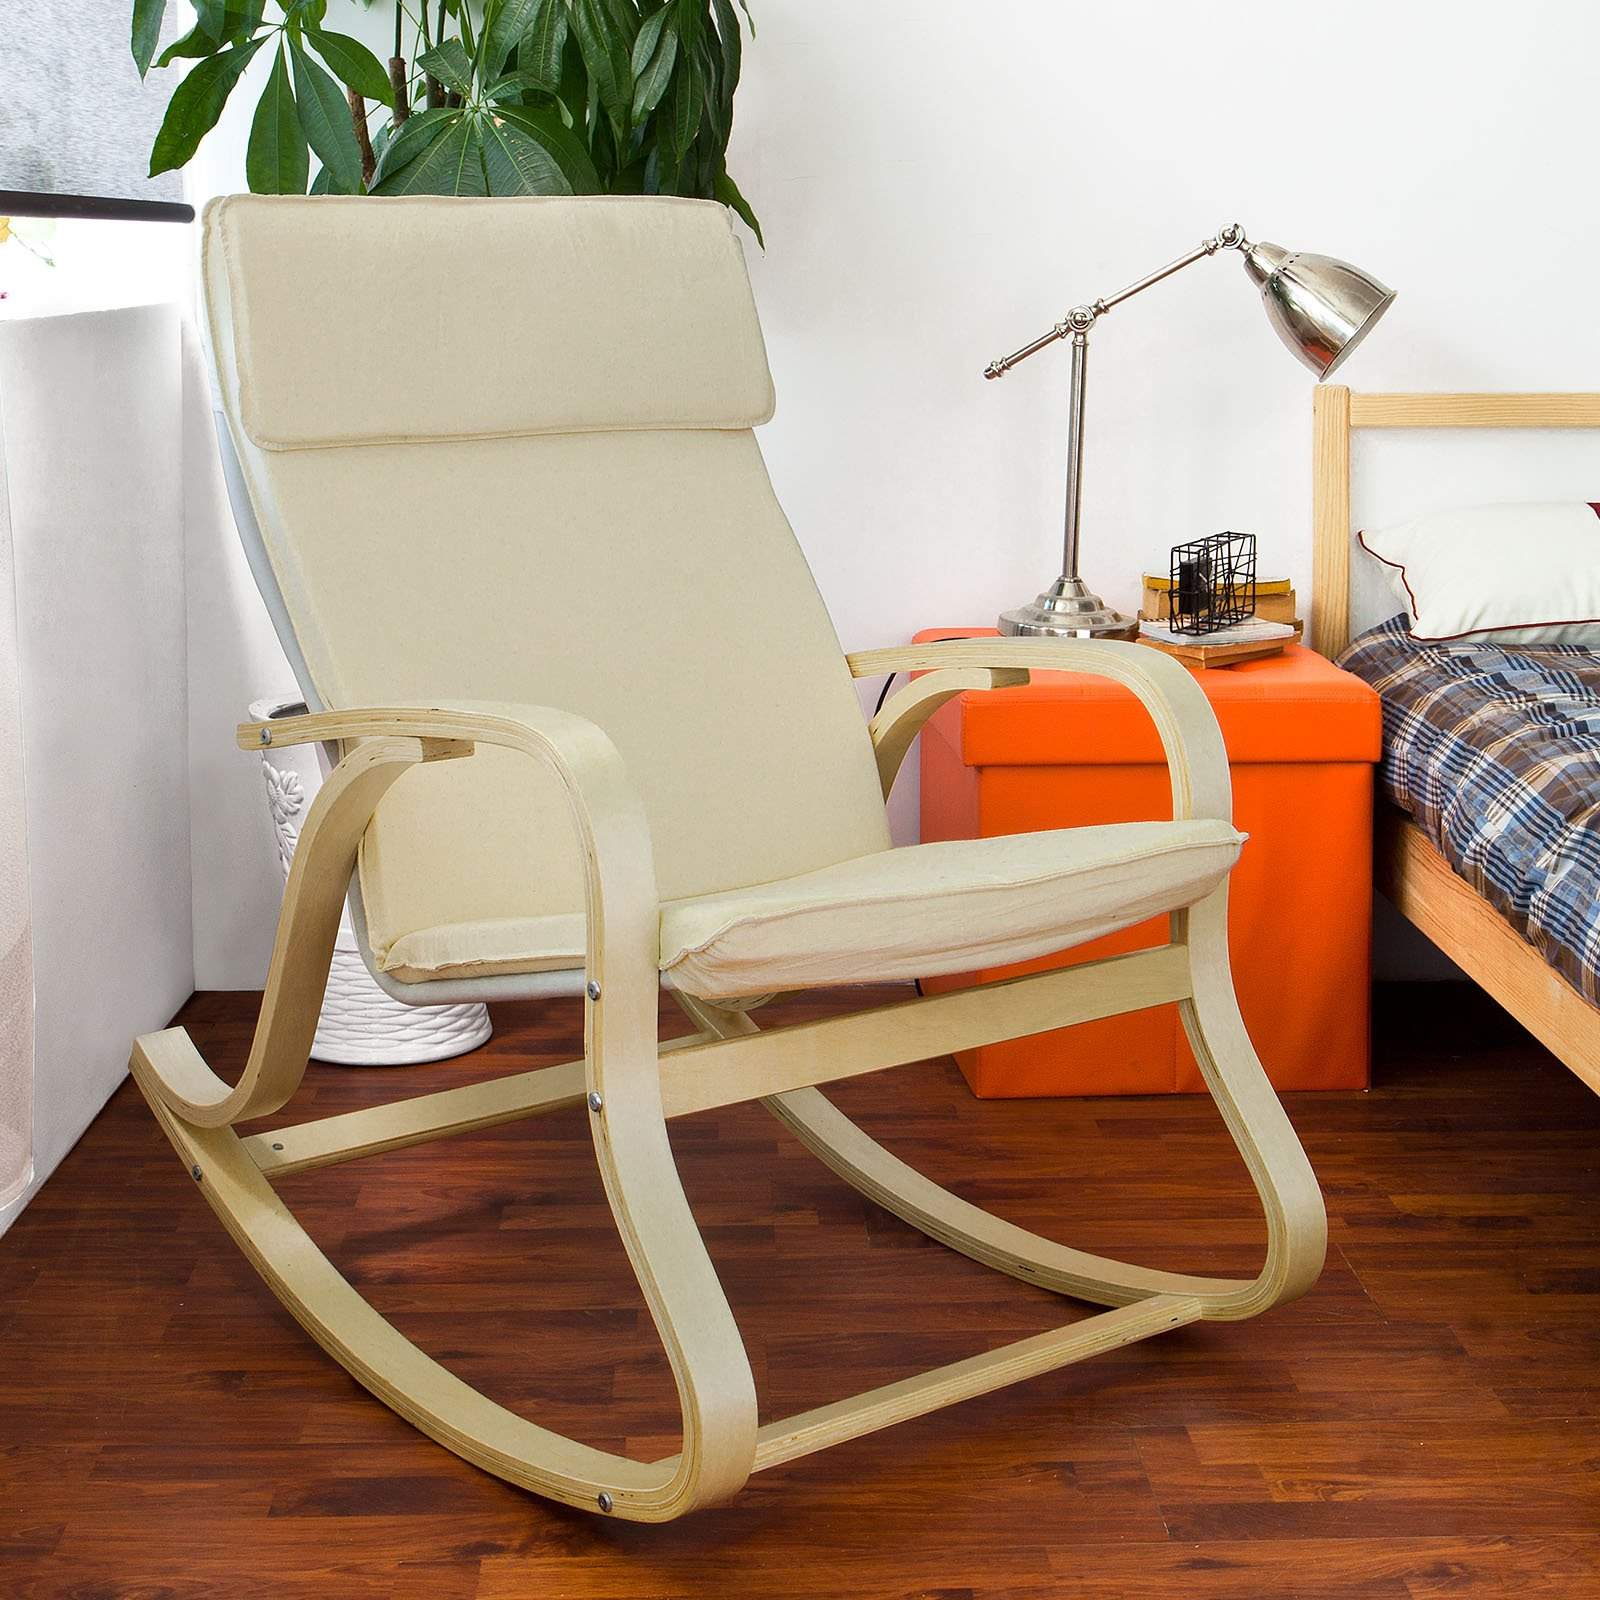 Get Quotations · SoBuy Comfortable Relax Rocking Chair, Gliders,Lounge Chair  With Cotton Fabric Cushion, FST15